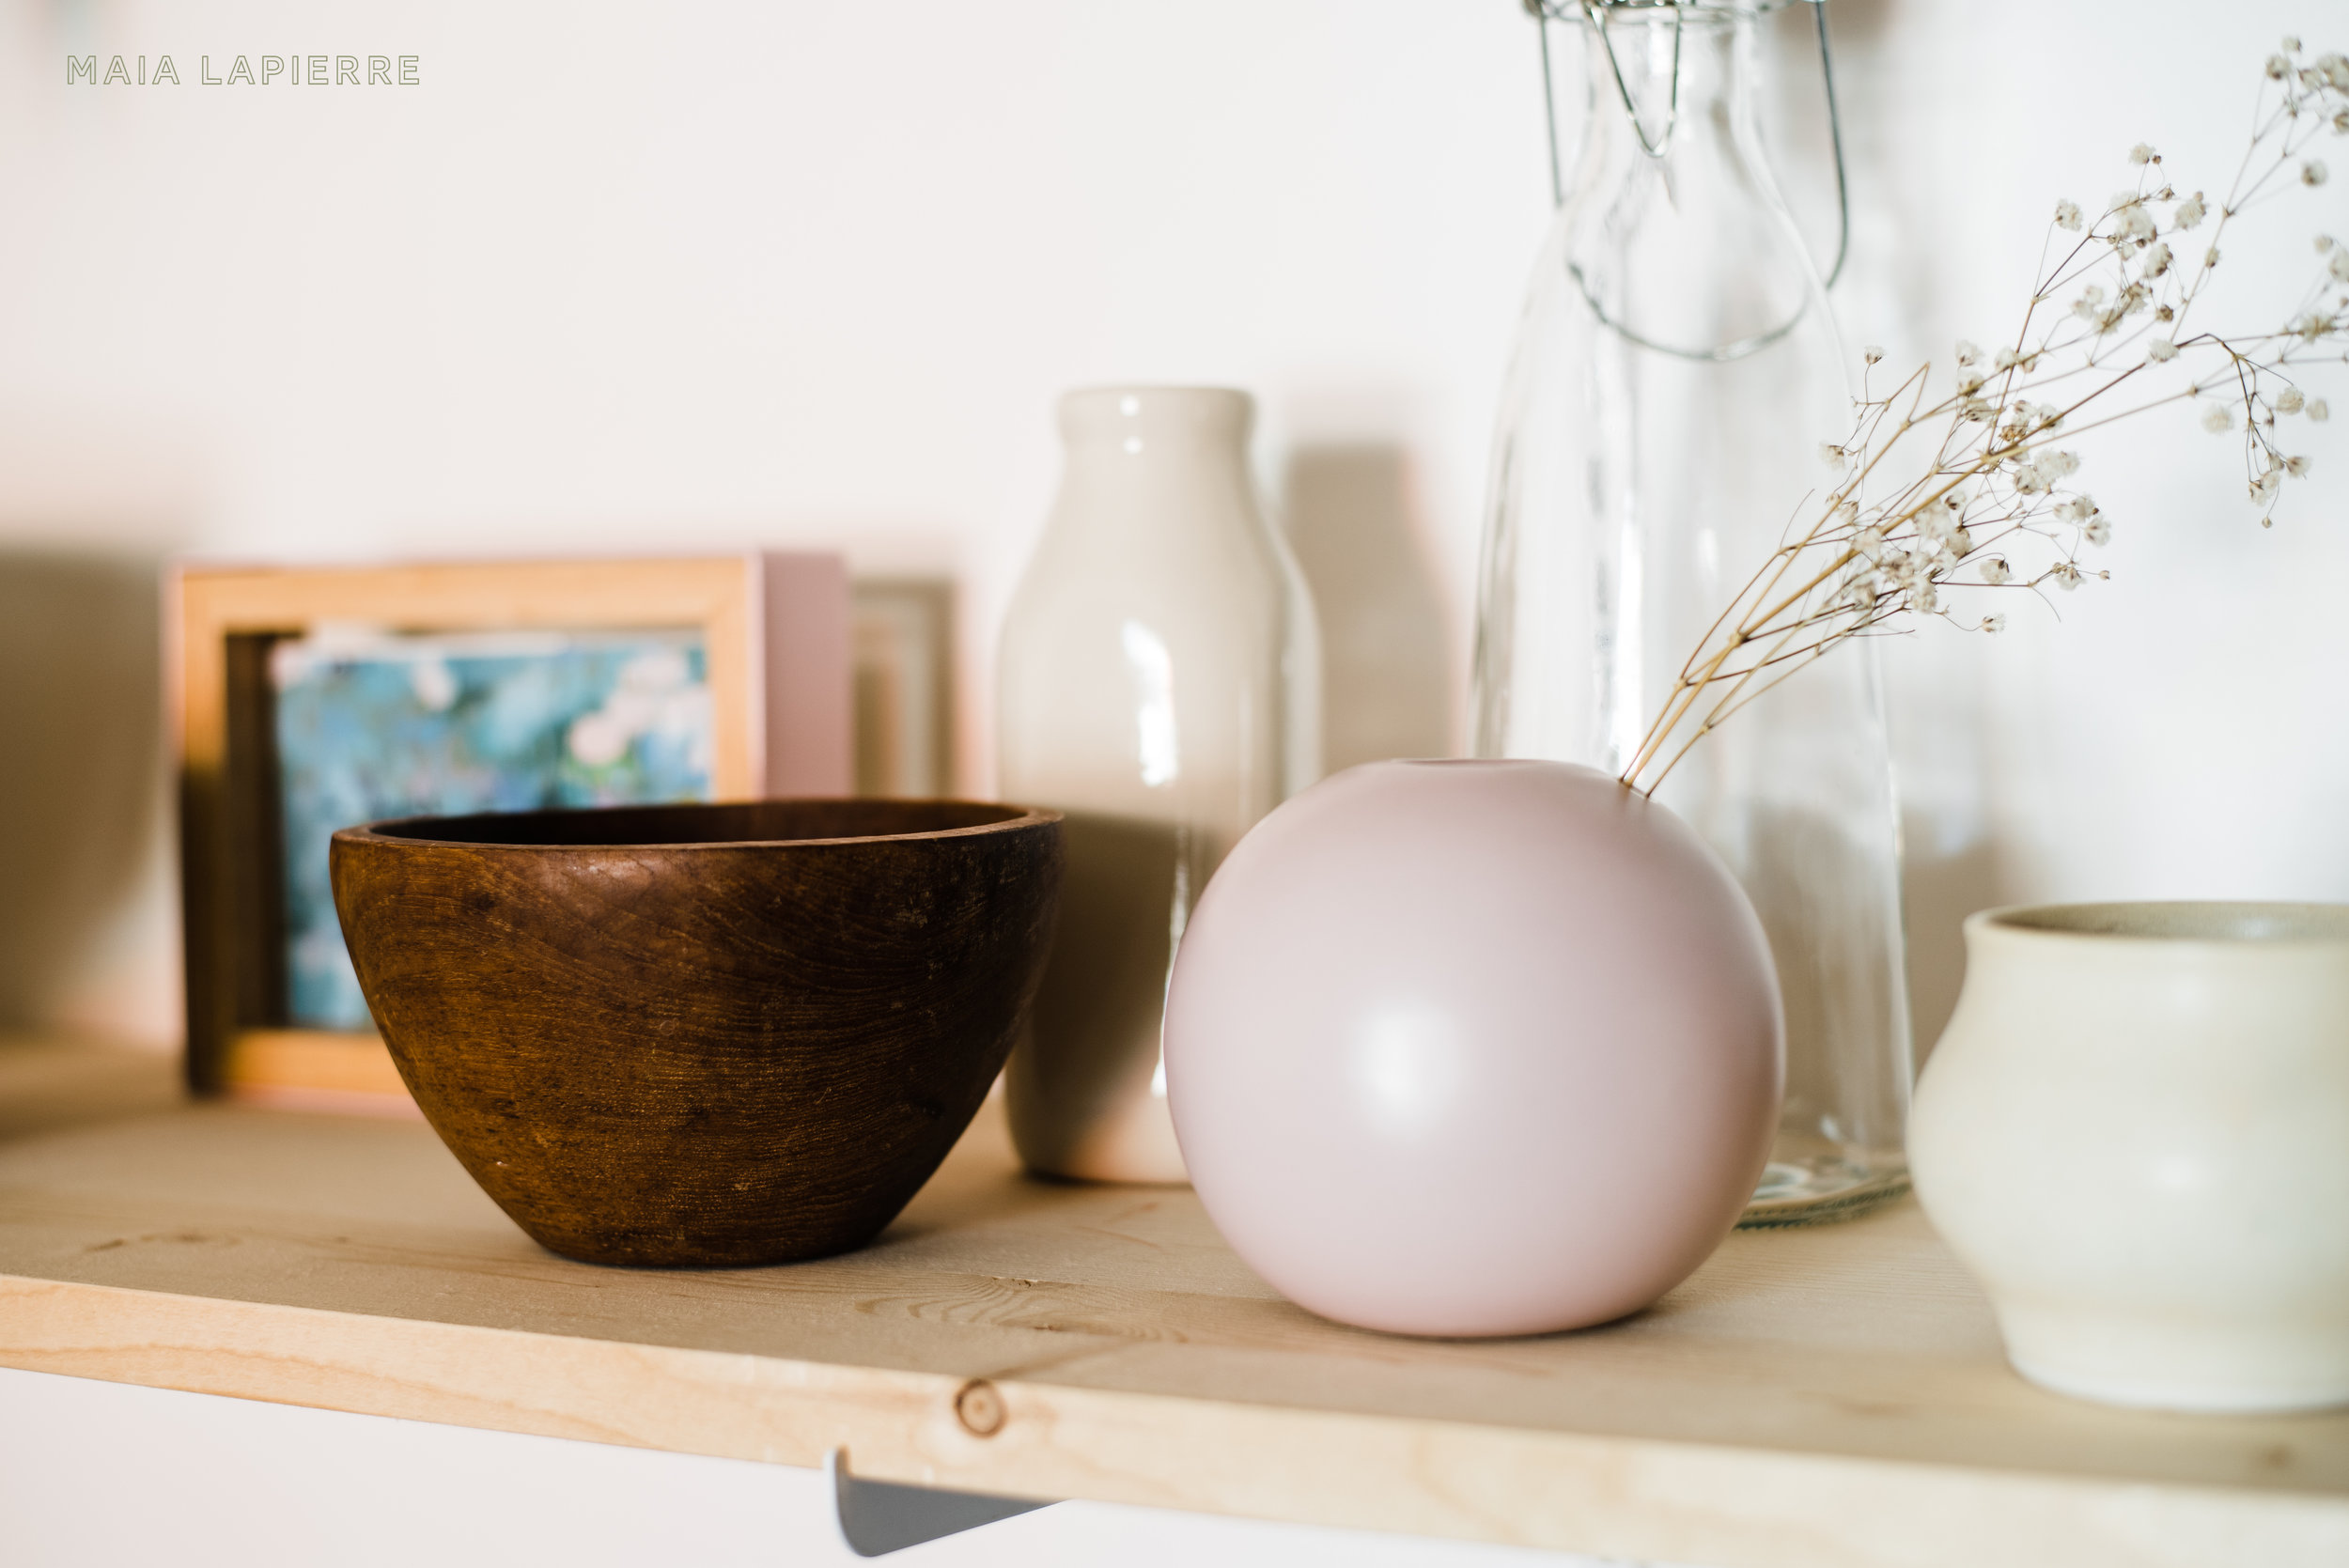 Maia LaPierre Interiors - Flo Meditation Studio Boutique